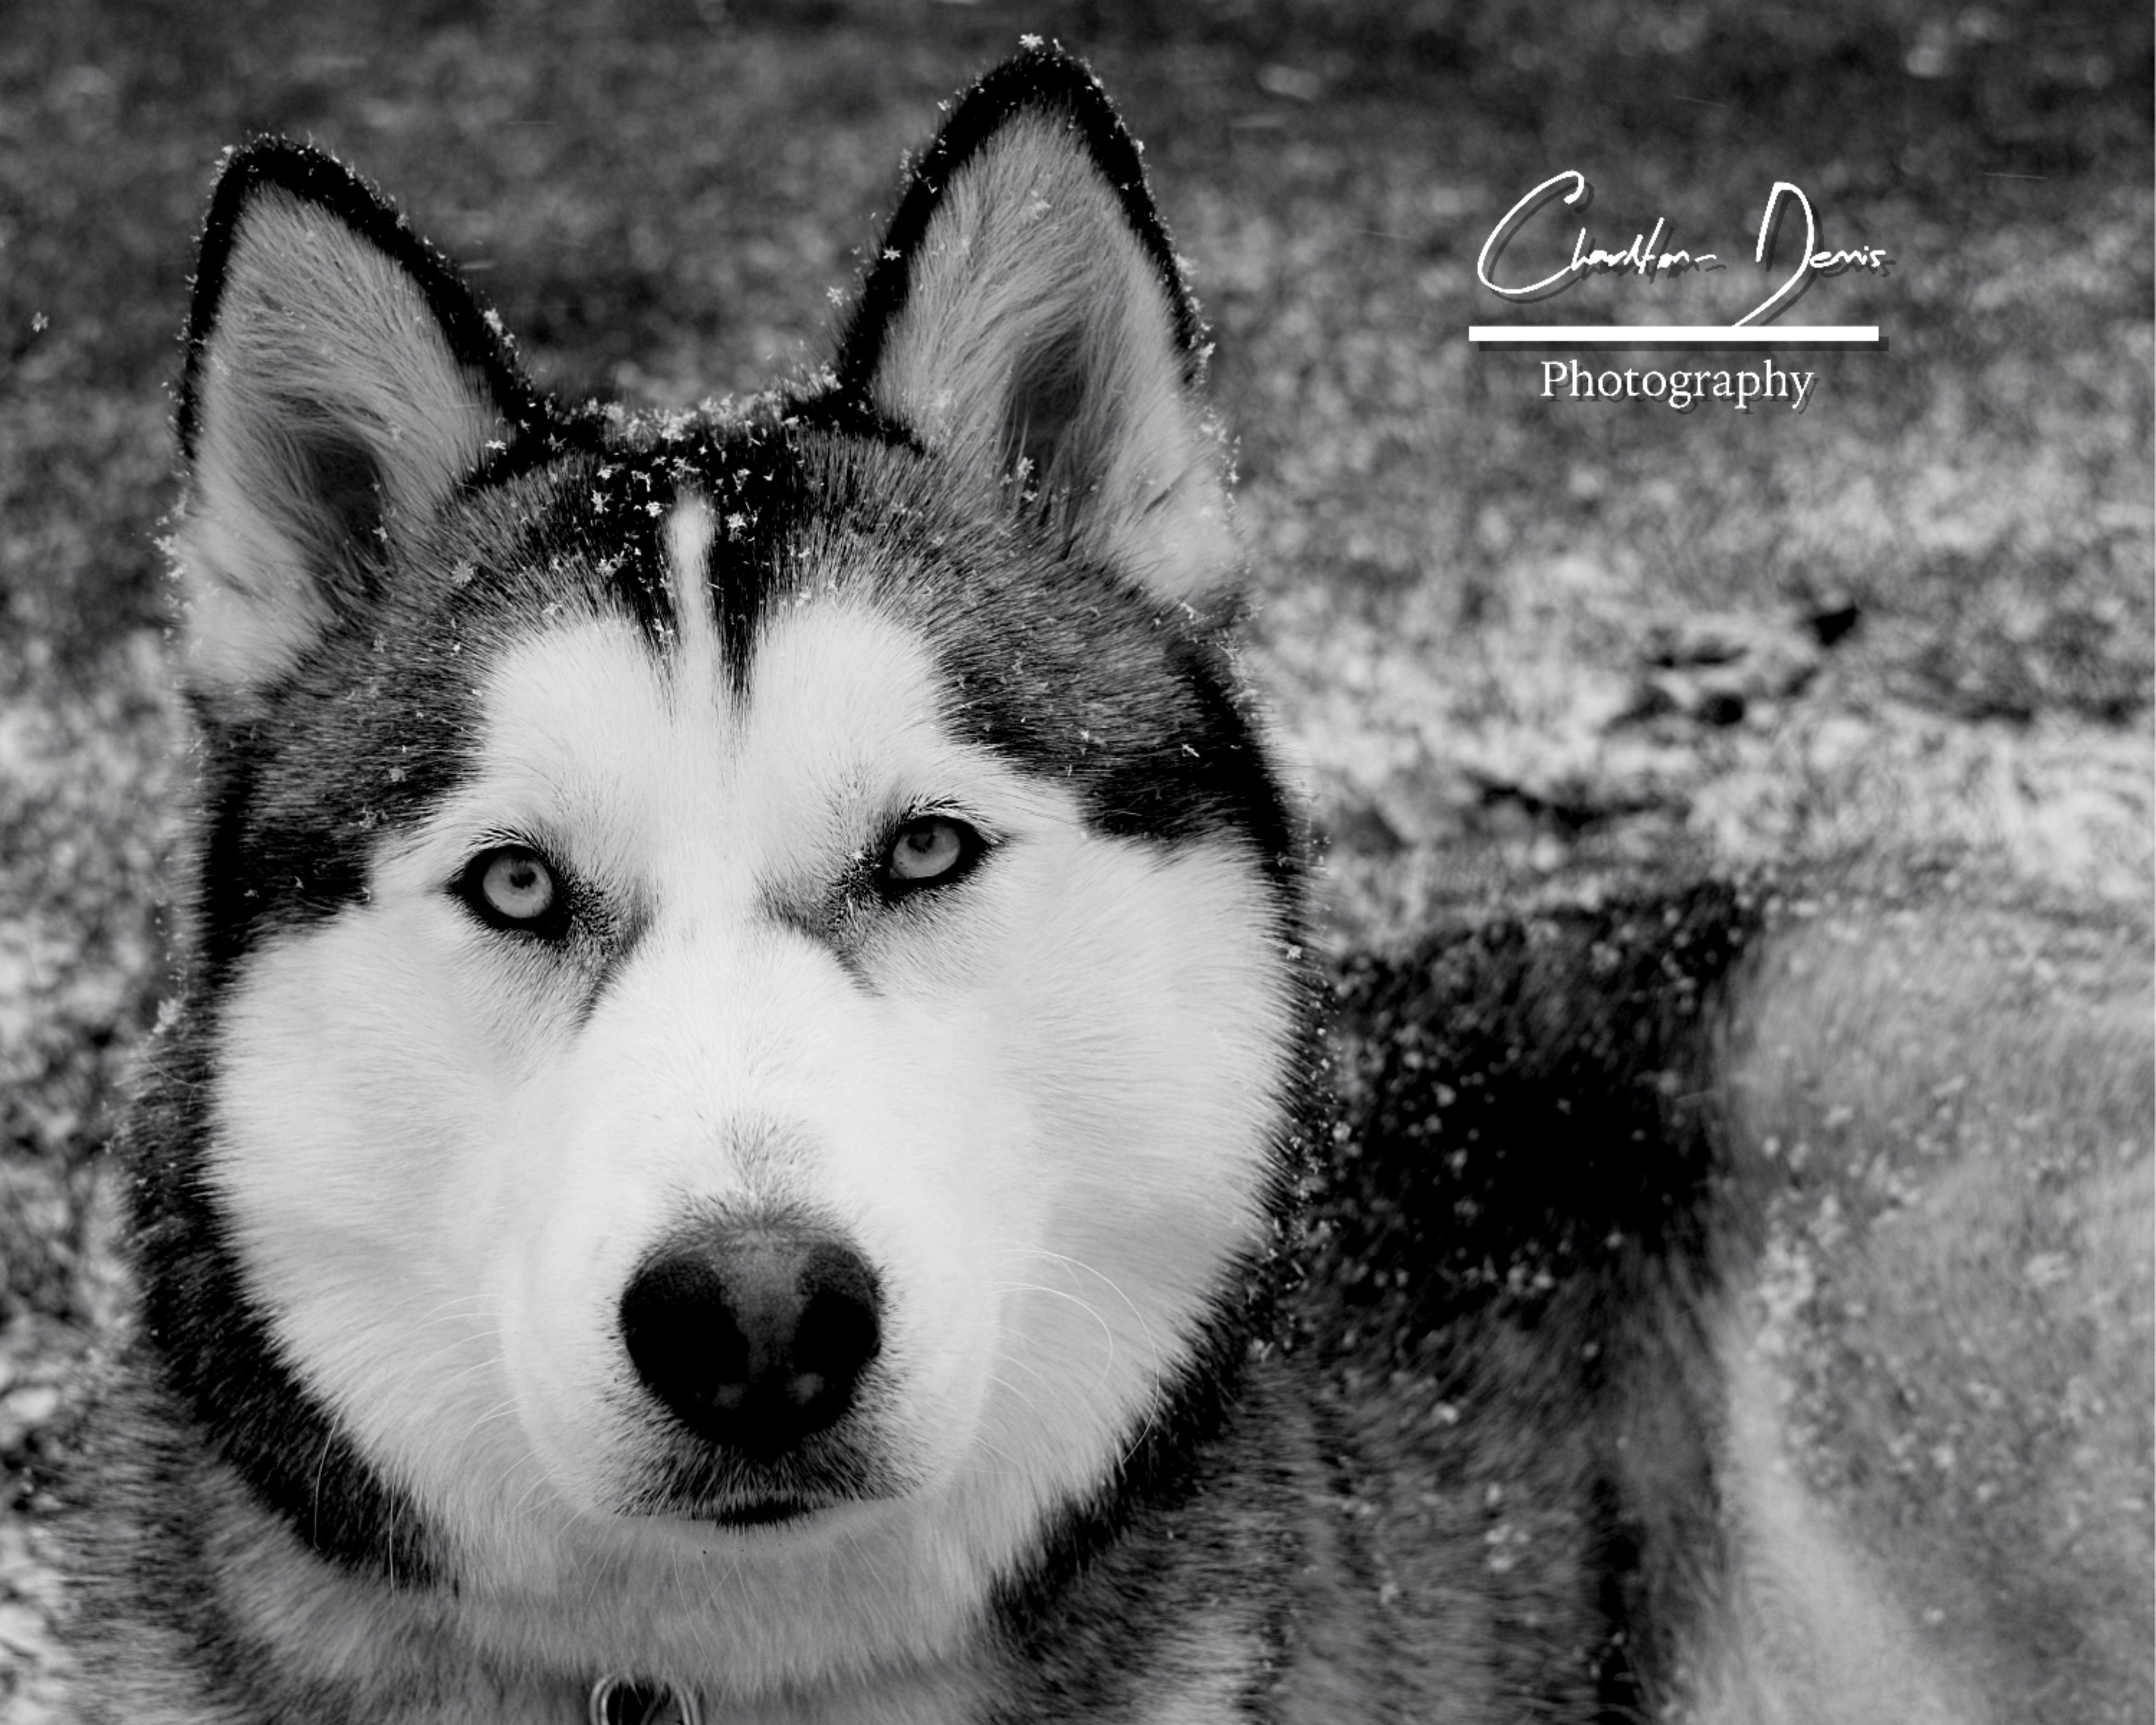 Siberian Husky Charlton Dennis Photography Husky Dogs Animals